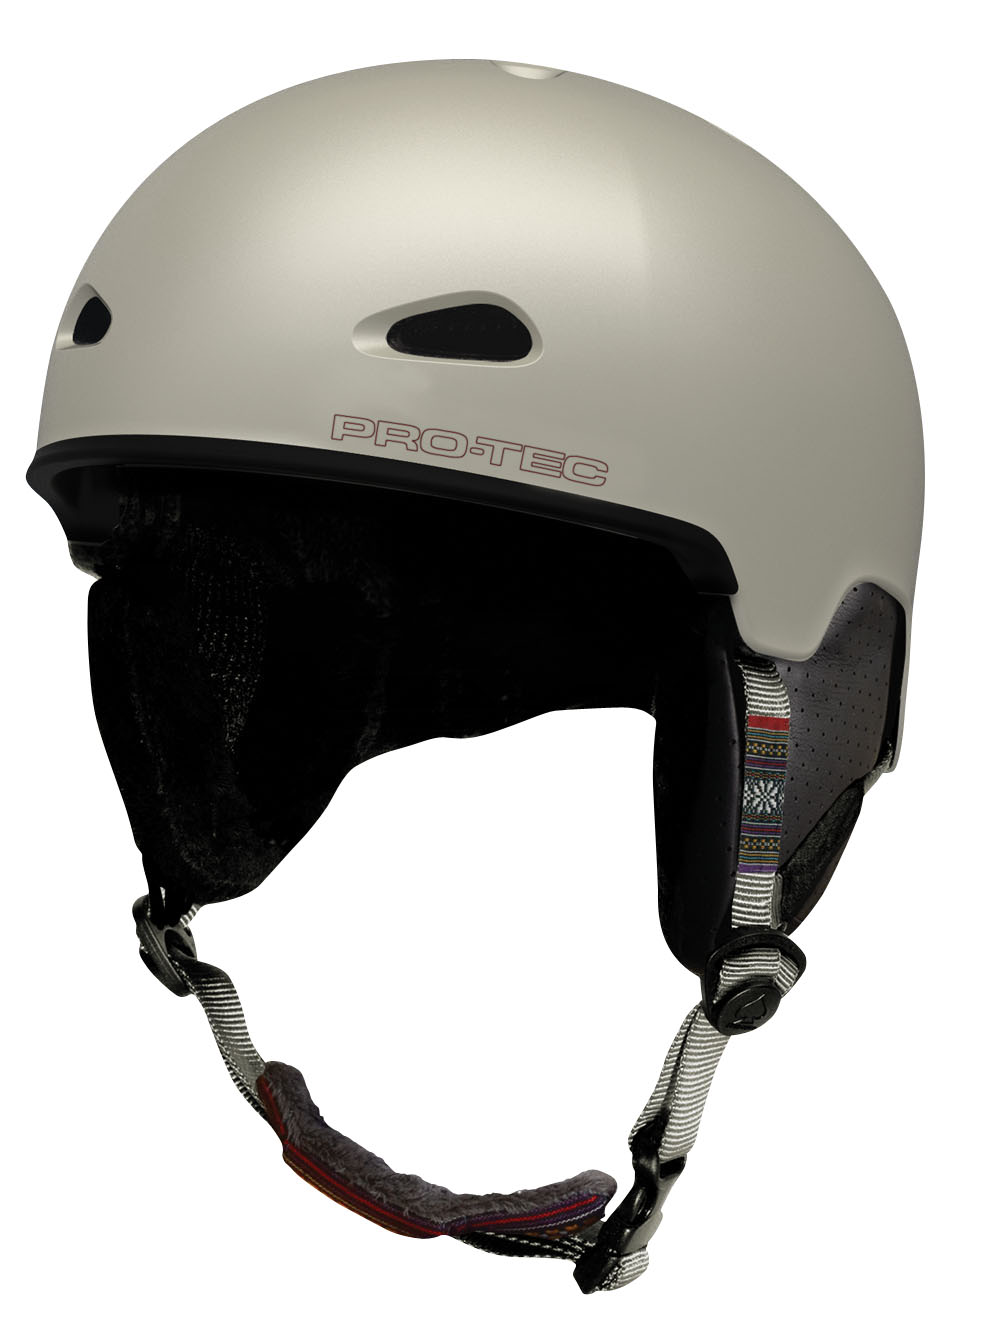 Pro-Tec Kensigngton helmet with the Boa Closure System.